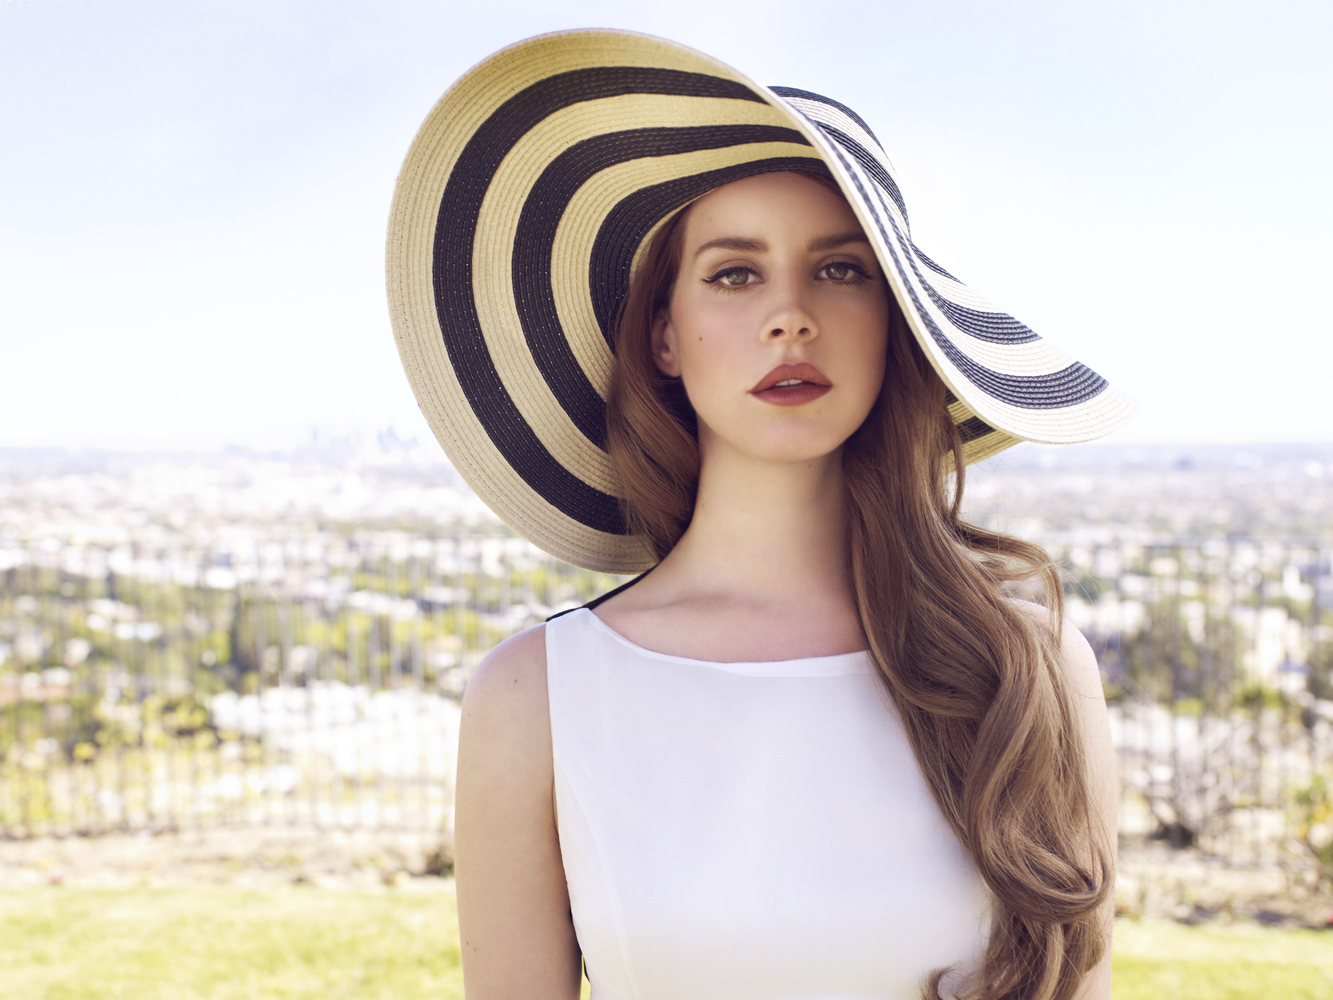 catholic single women in marina del rey Elizabeth woolridge grant (born june 21, 1985), known professionally as lana del rey del rey announced the lead single and natasha khan as women she.